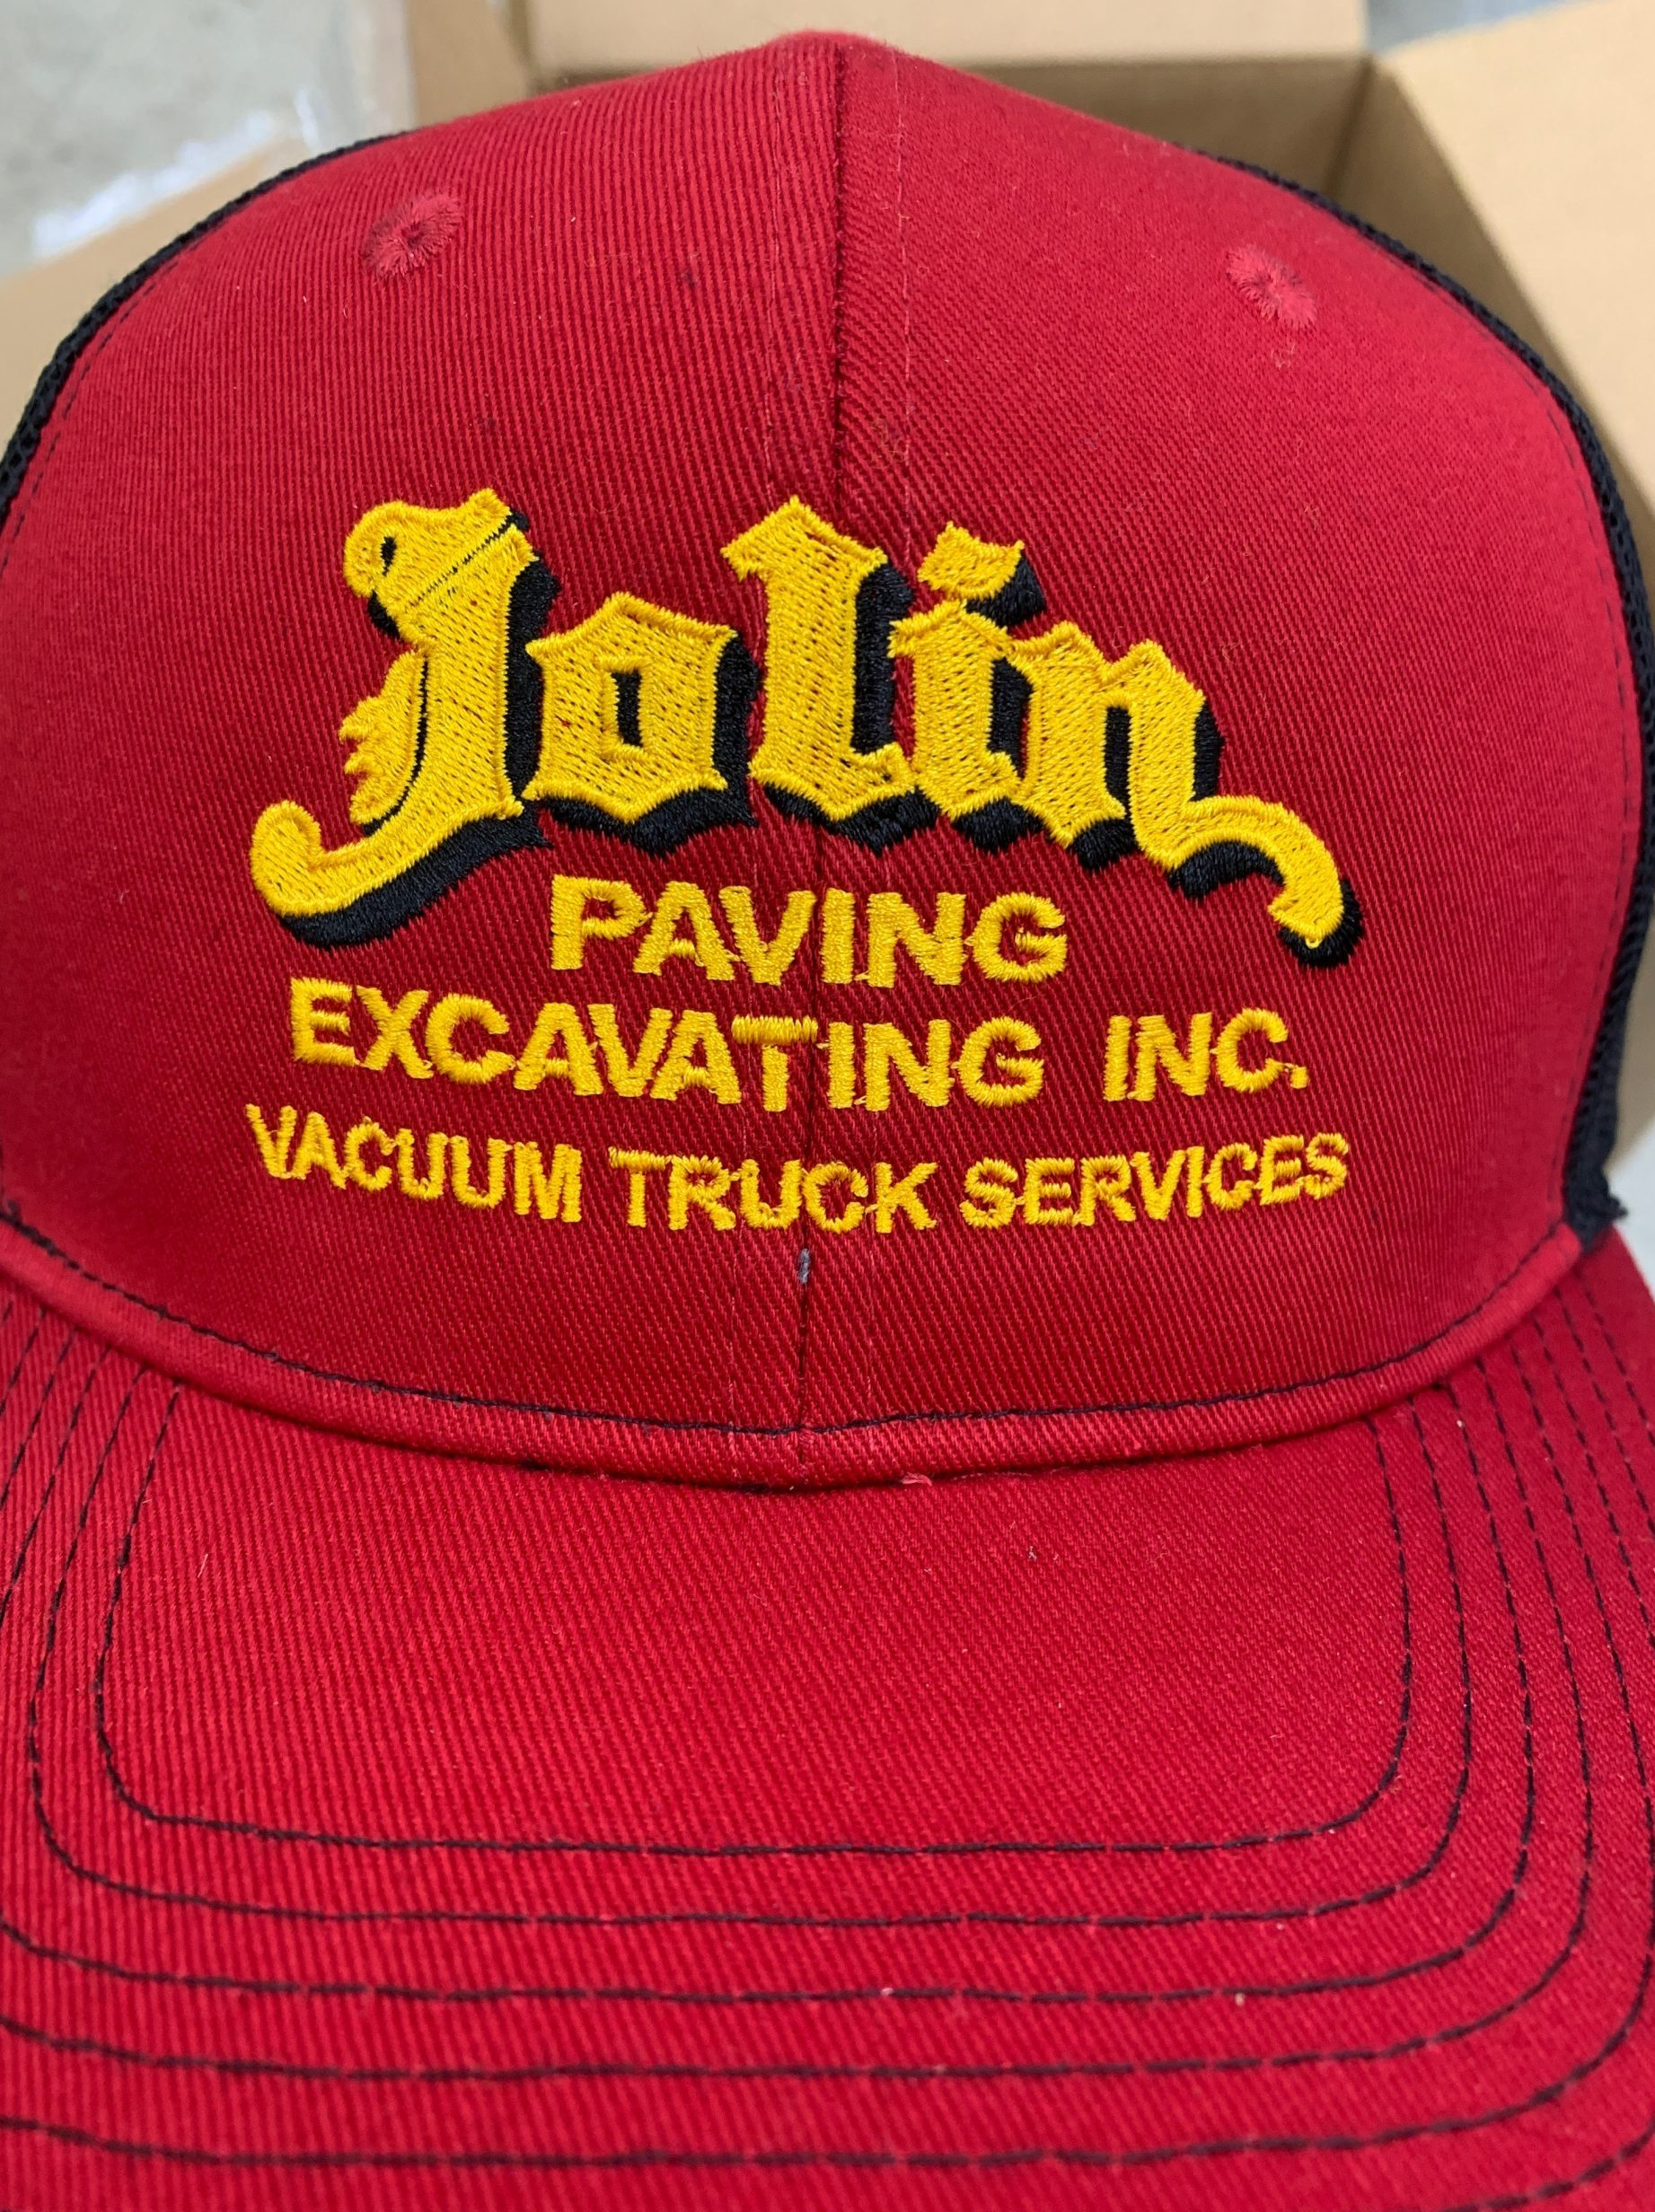 jolin paving embroidered hat